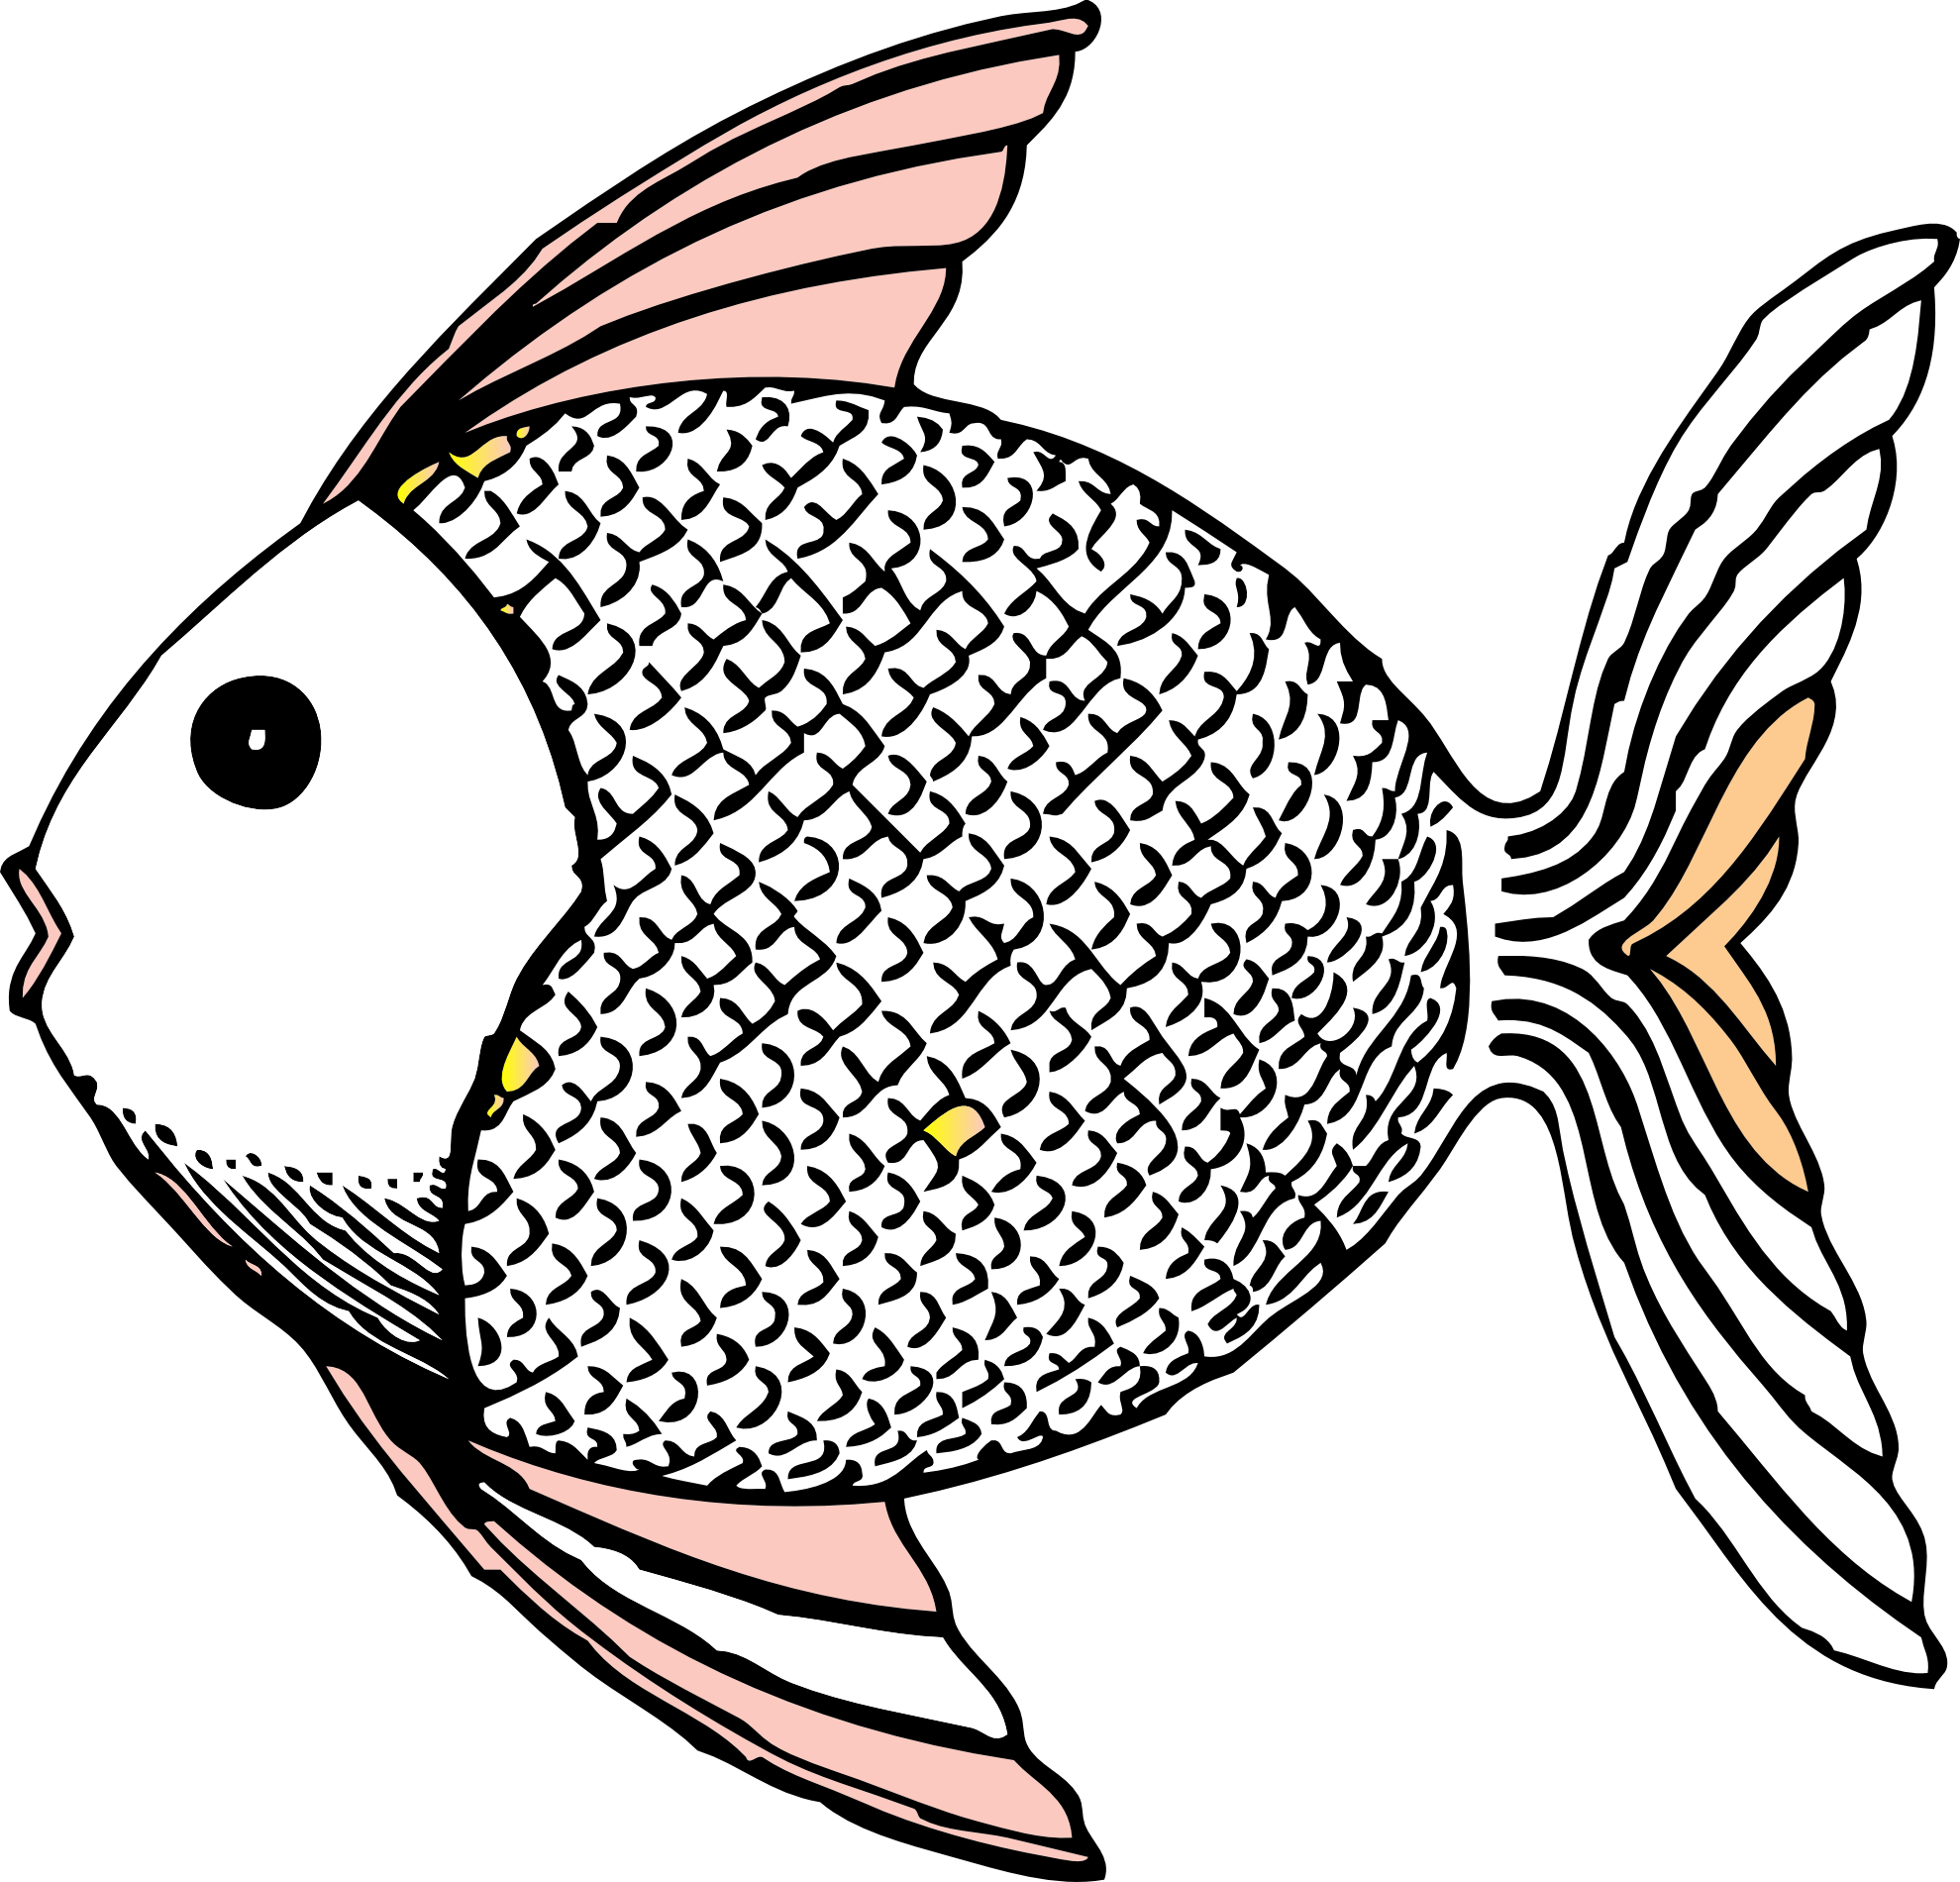 Free images drawings download. Drawing clipart fish graphic royalty free download